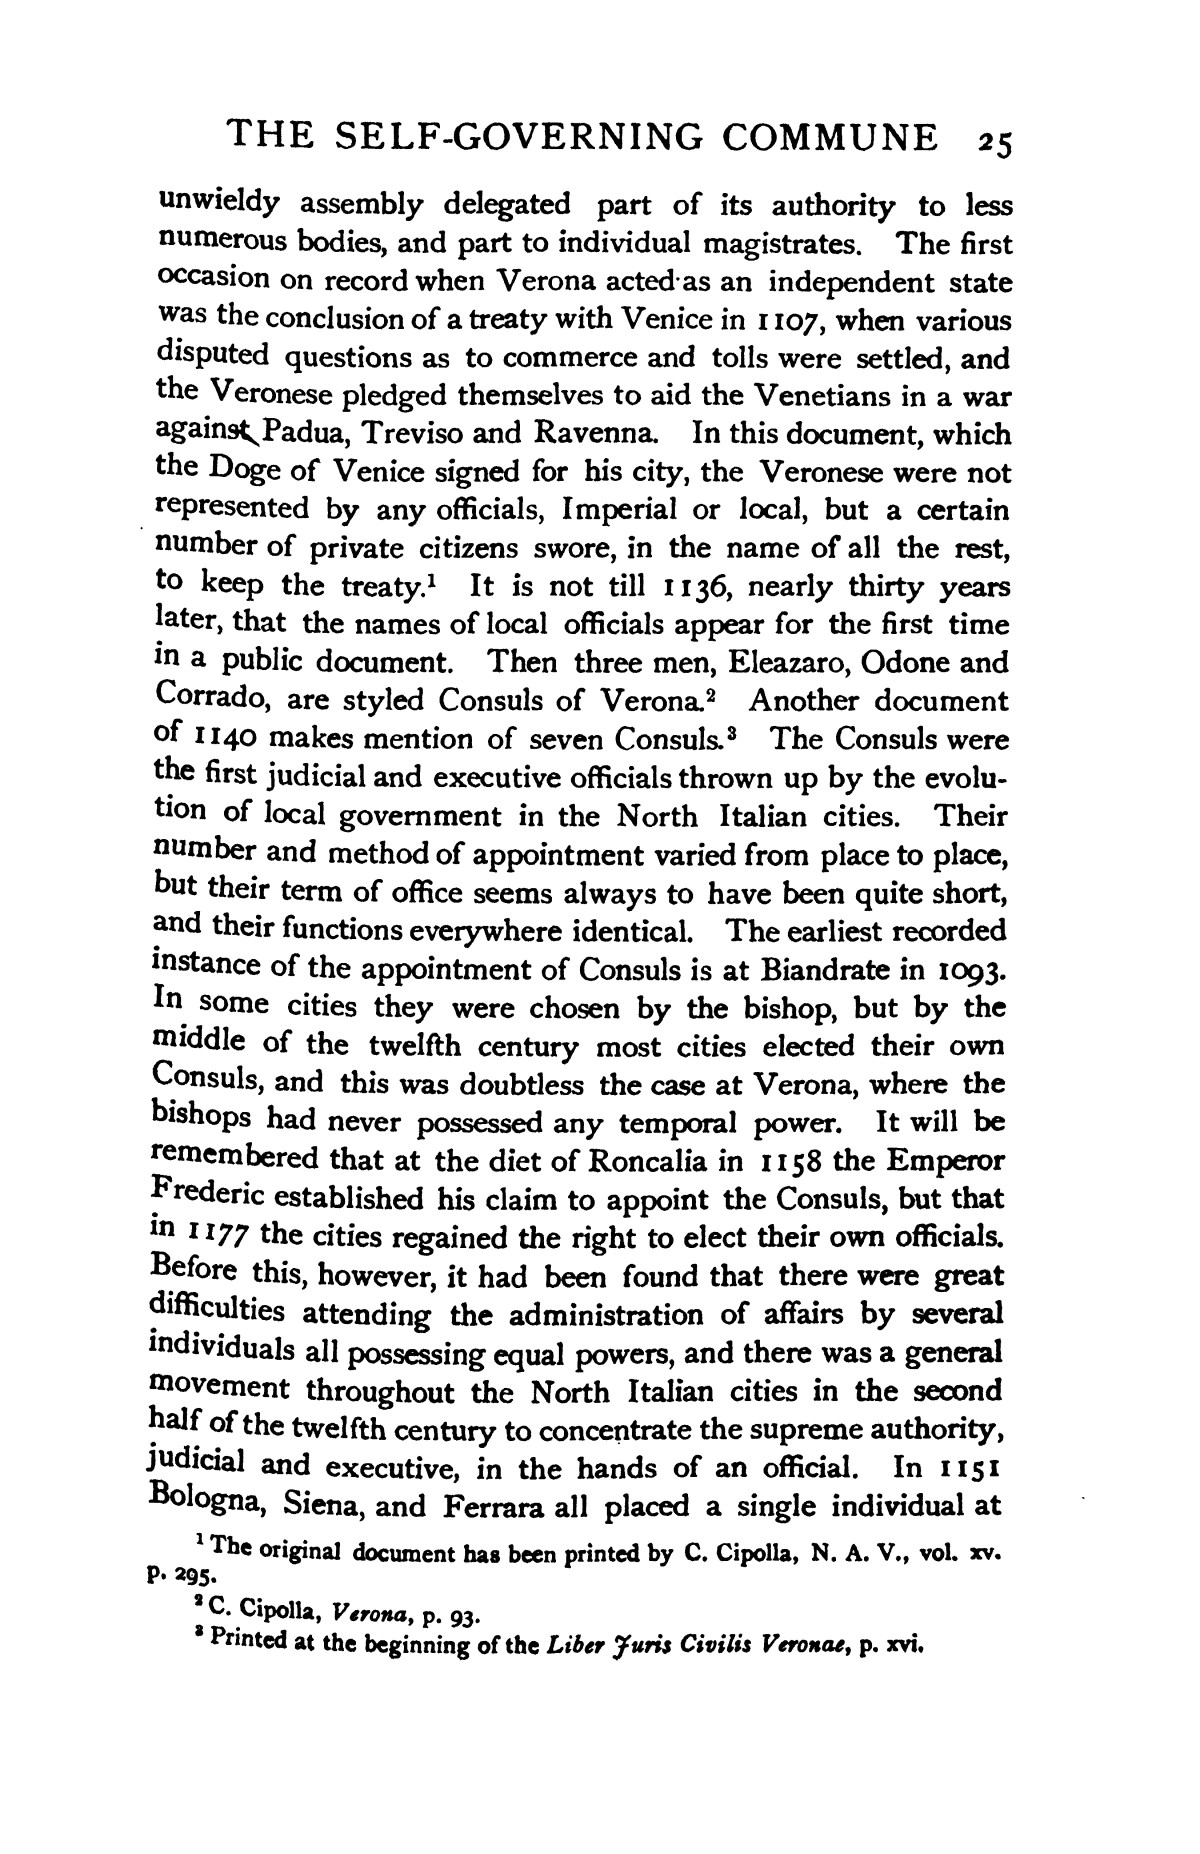 A history of Verona, by A. M. Allen.  Edited by Edward Armstrong, with twenty illustrations and three maps.                                                                                                      [Sequence #]: 42 of 493